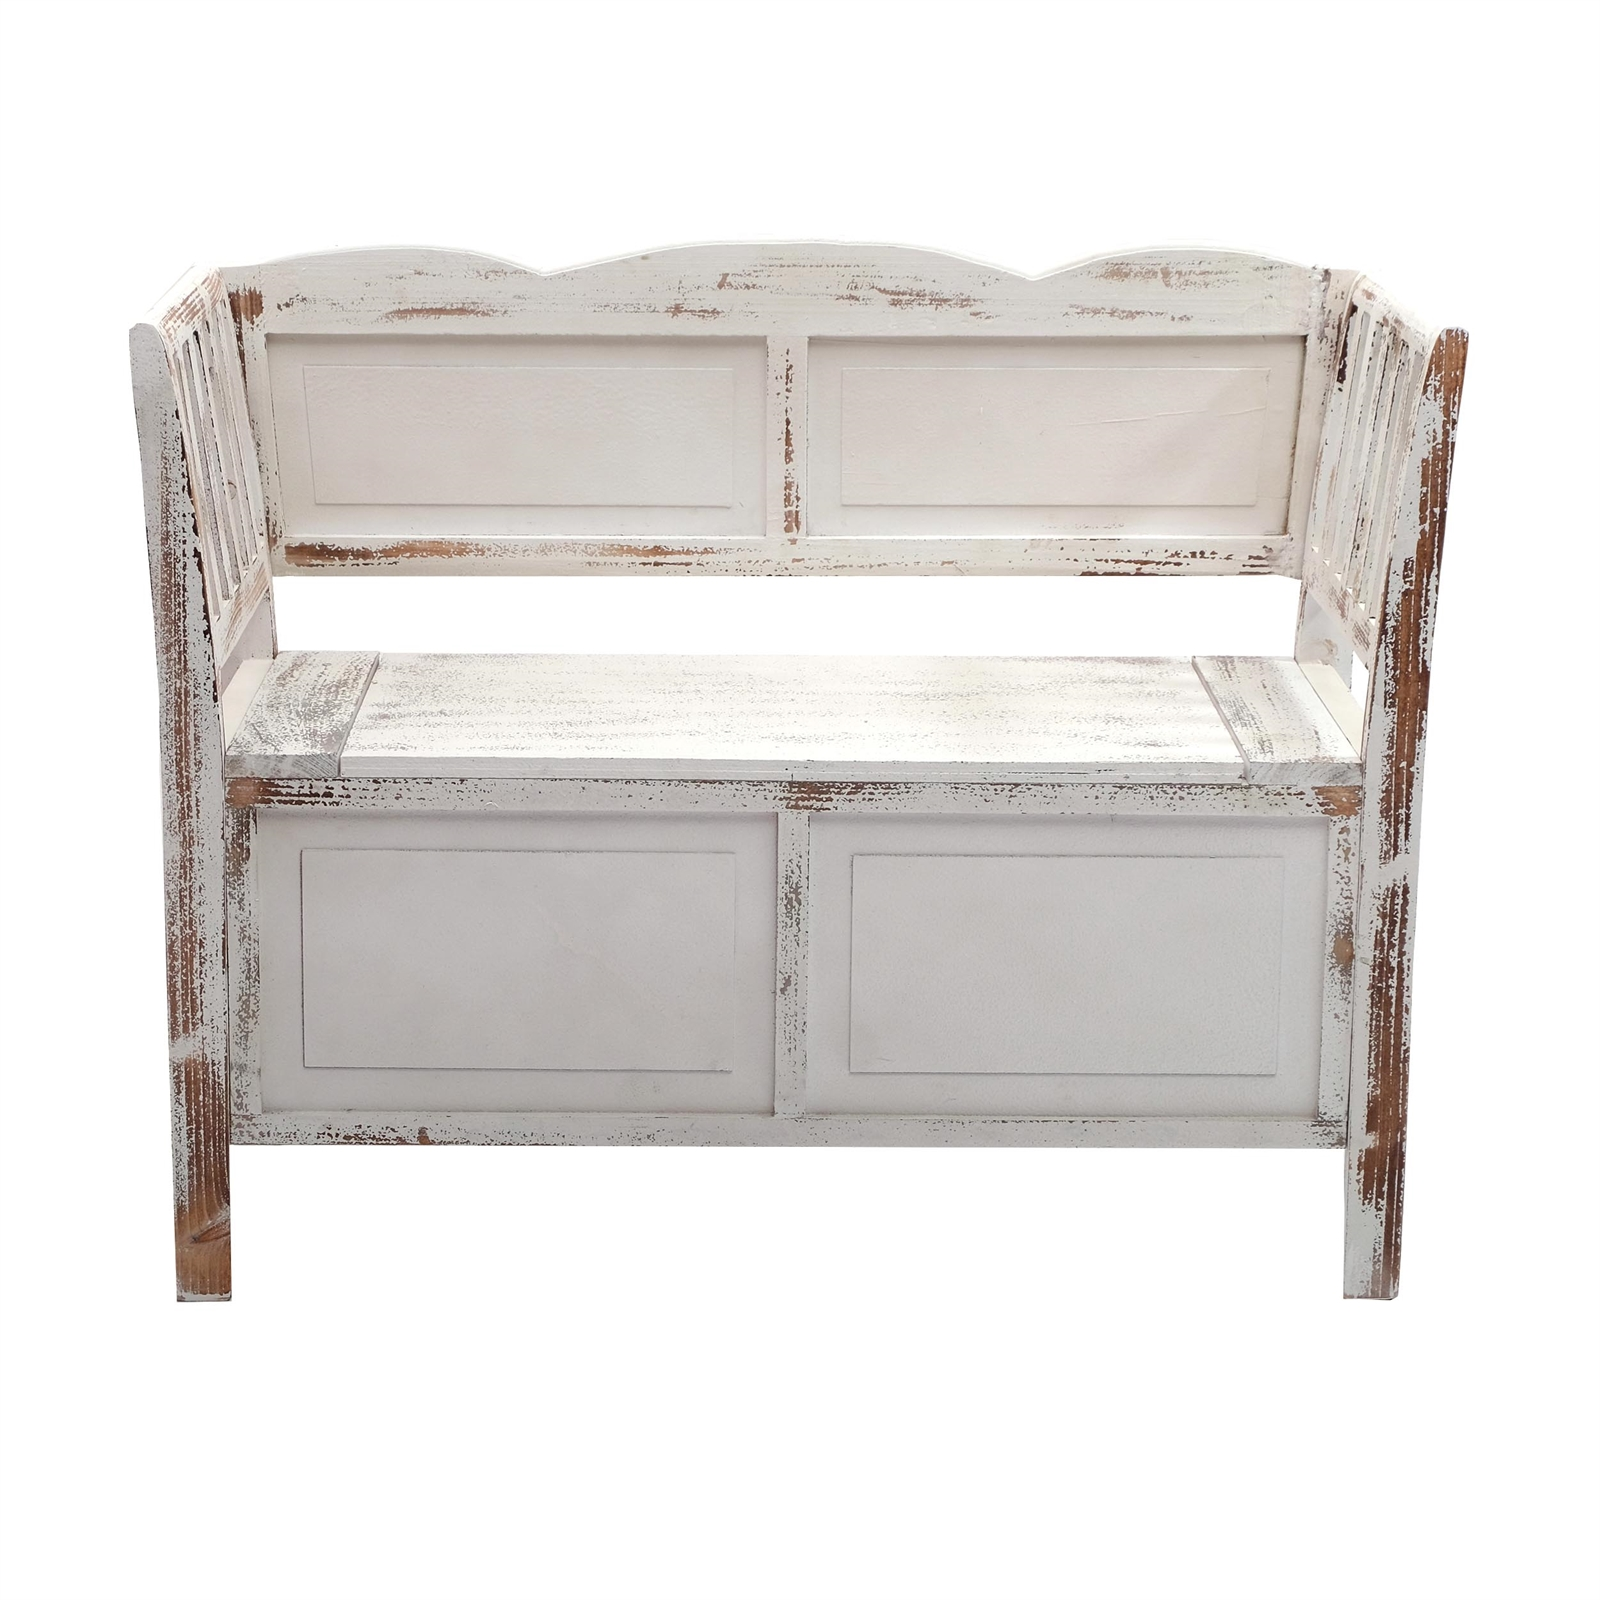 sitzbank farm wei braun 105 cm shabby chic bank holzbank mit stauraum ebay. Black Bedroom Furniture Sets. Home Design Ideas